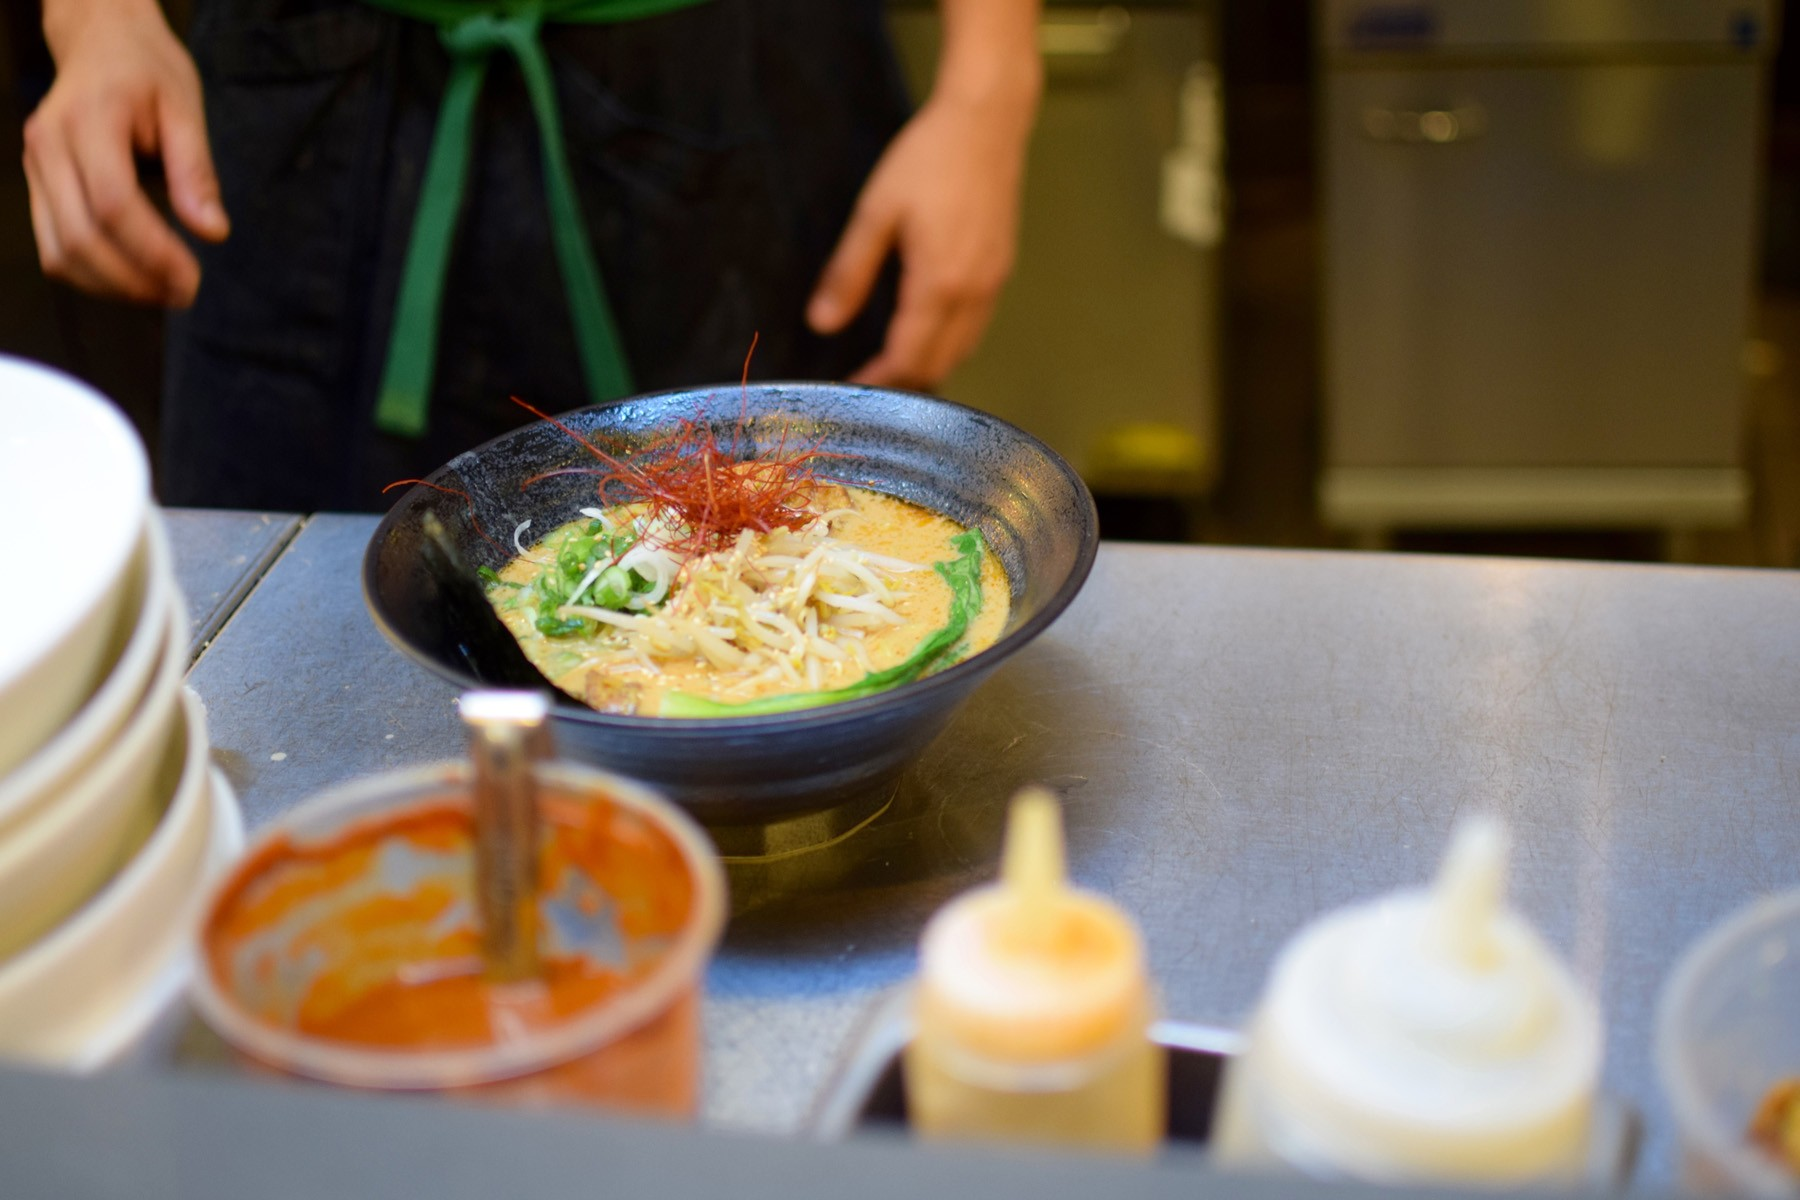 on_the_line_at_ramen_hood_with_sauces - 1